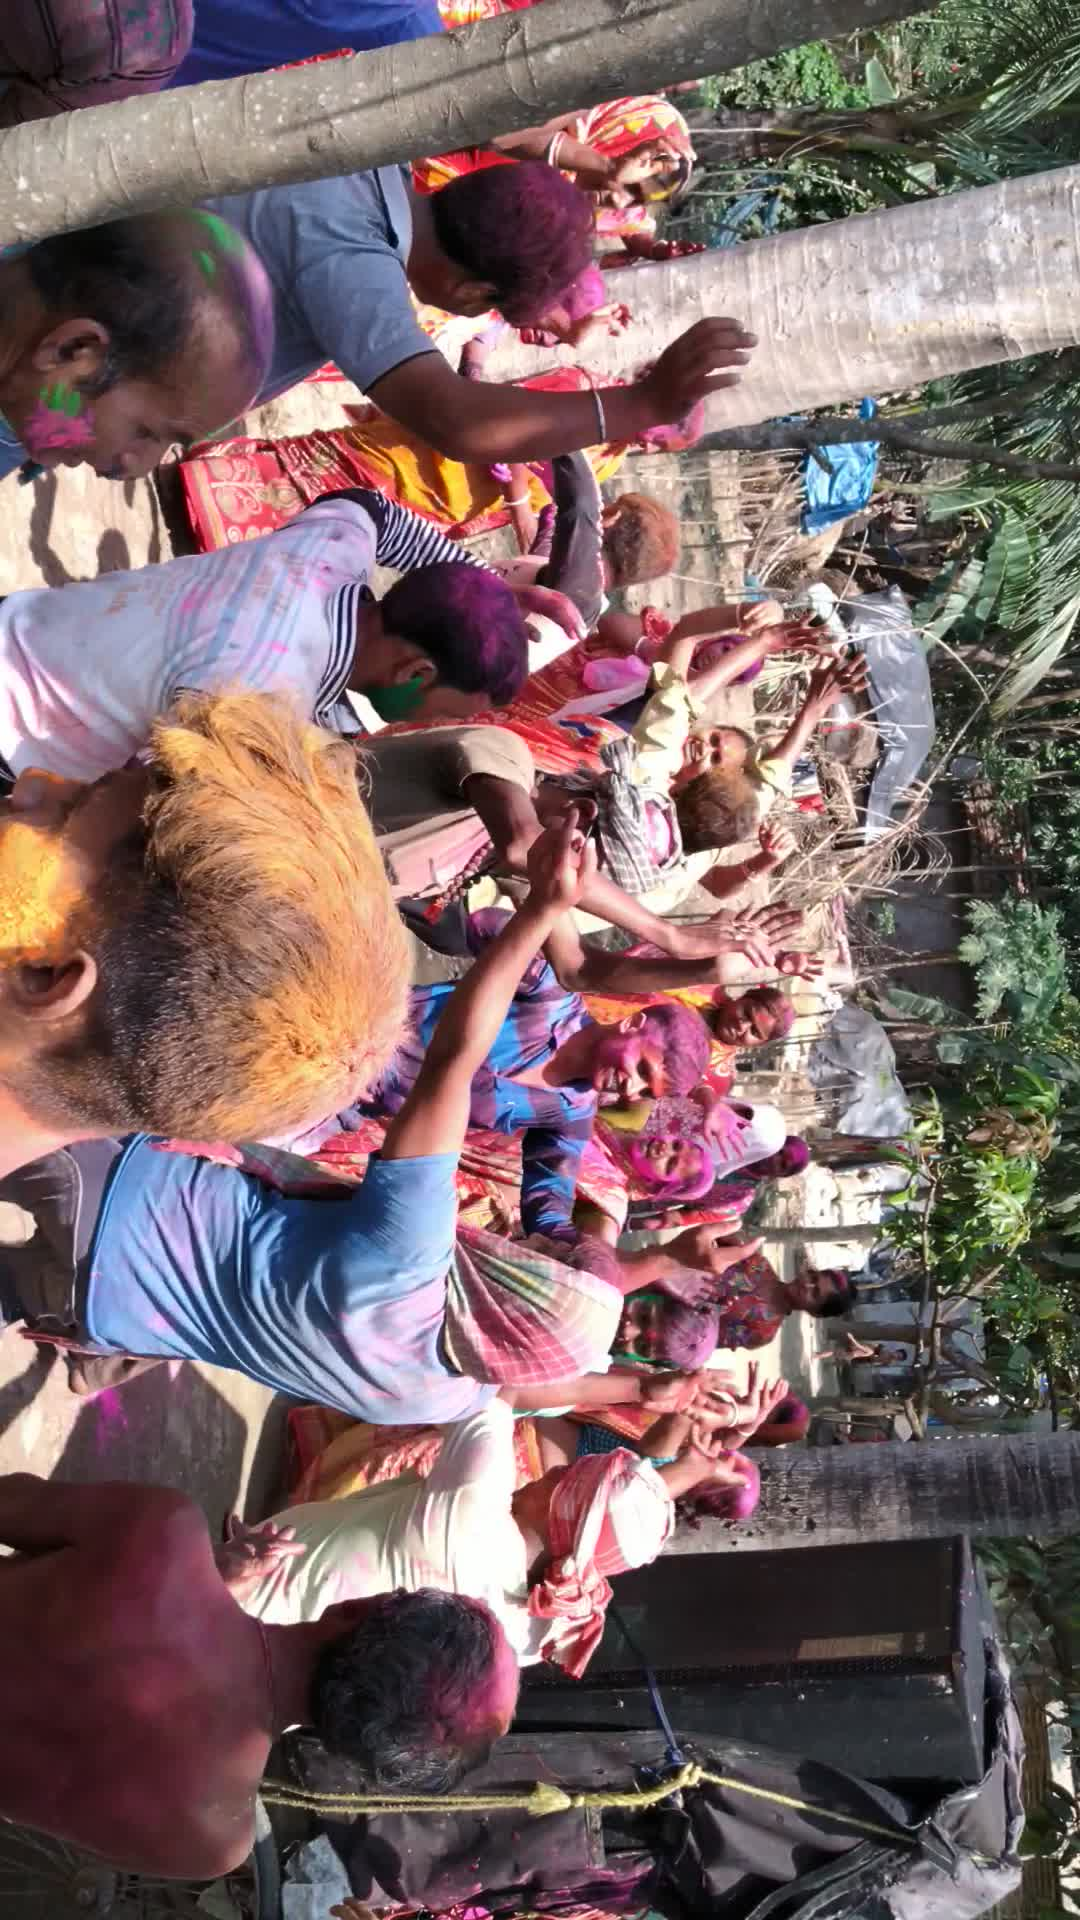 The video you are watching is a big festival of Hindus. The name of the festival is Holi. We celebrate it every year. We get everyone together through dance-song and color.